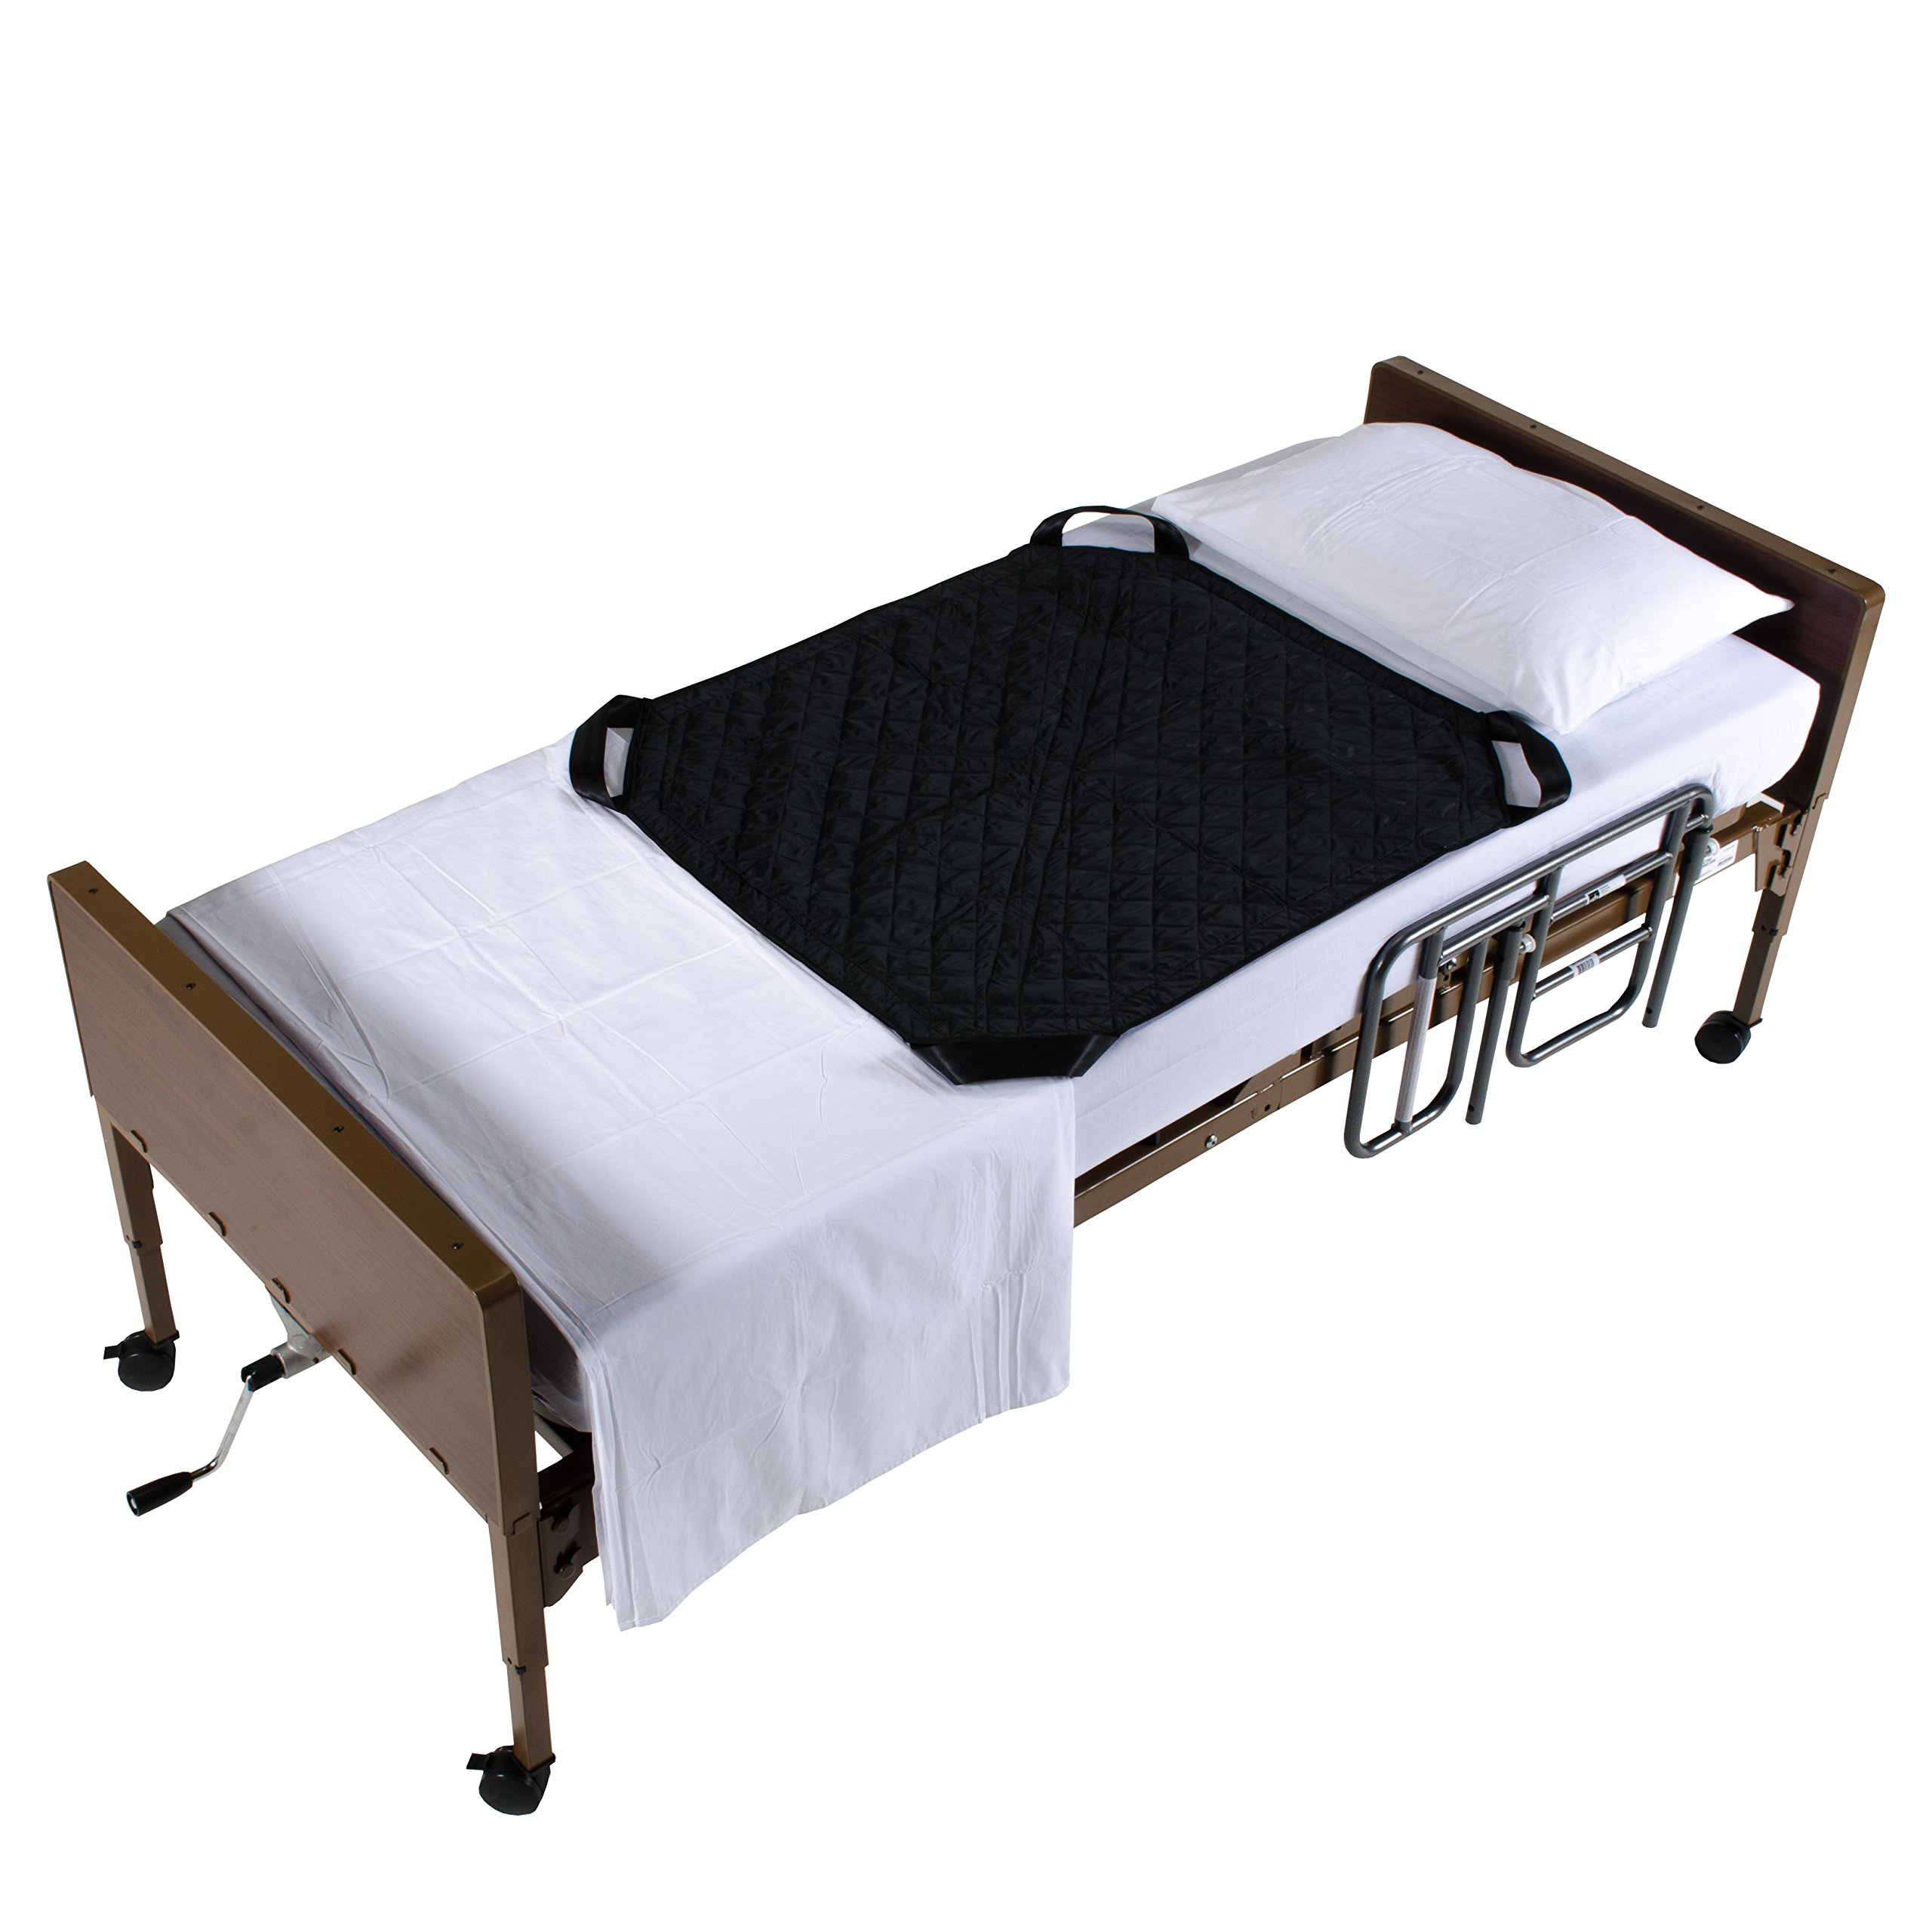 4 Handled Patient Turner & Positioning Aid for Patient Transfers, Turning, and Repositioning in Beds, Perfect For Hospitals and Home Care, to Assist Moving Elderly and Disabled Patients 400lb Capacity by Patient Aid